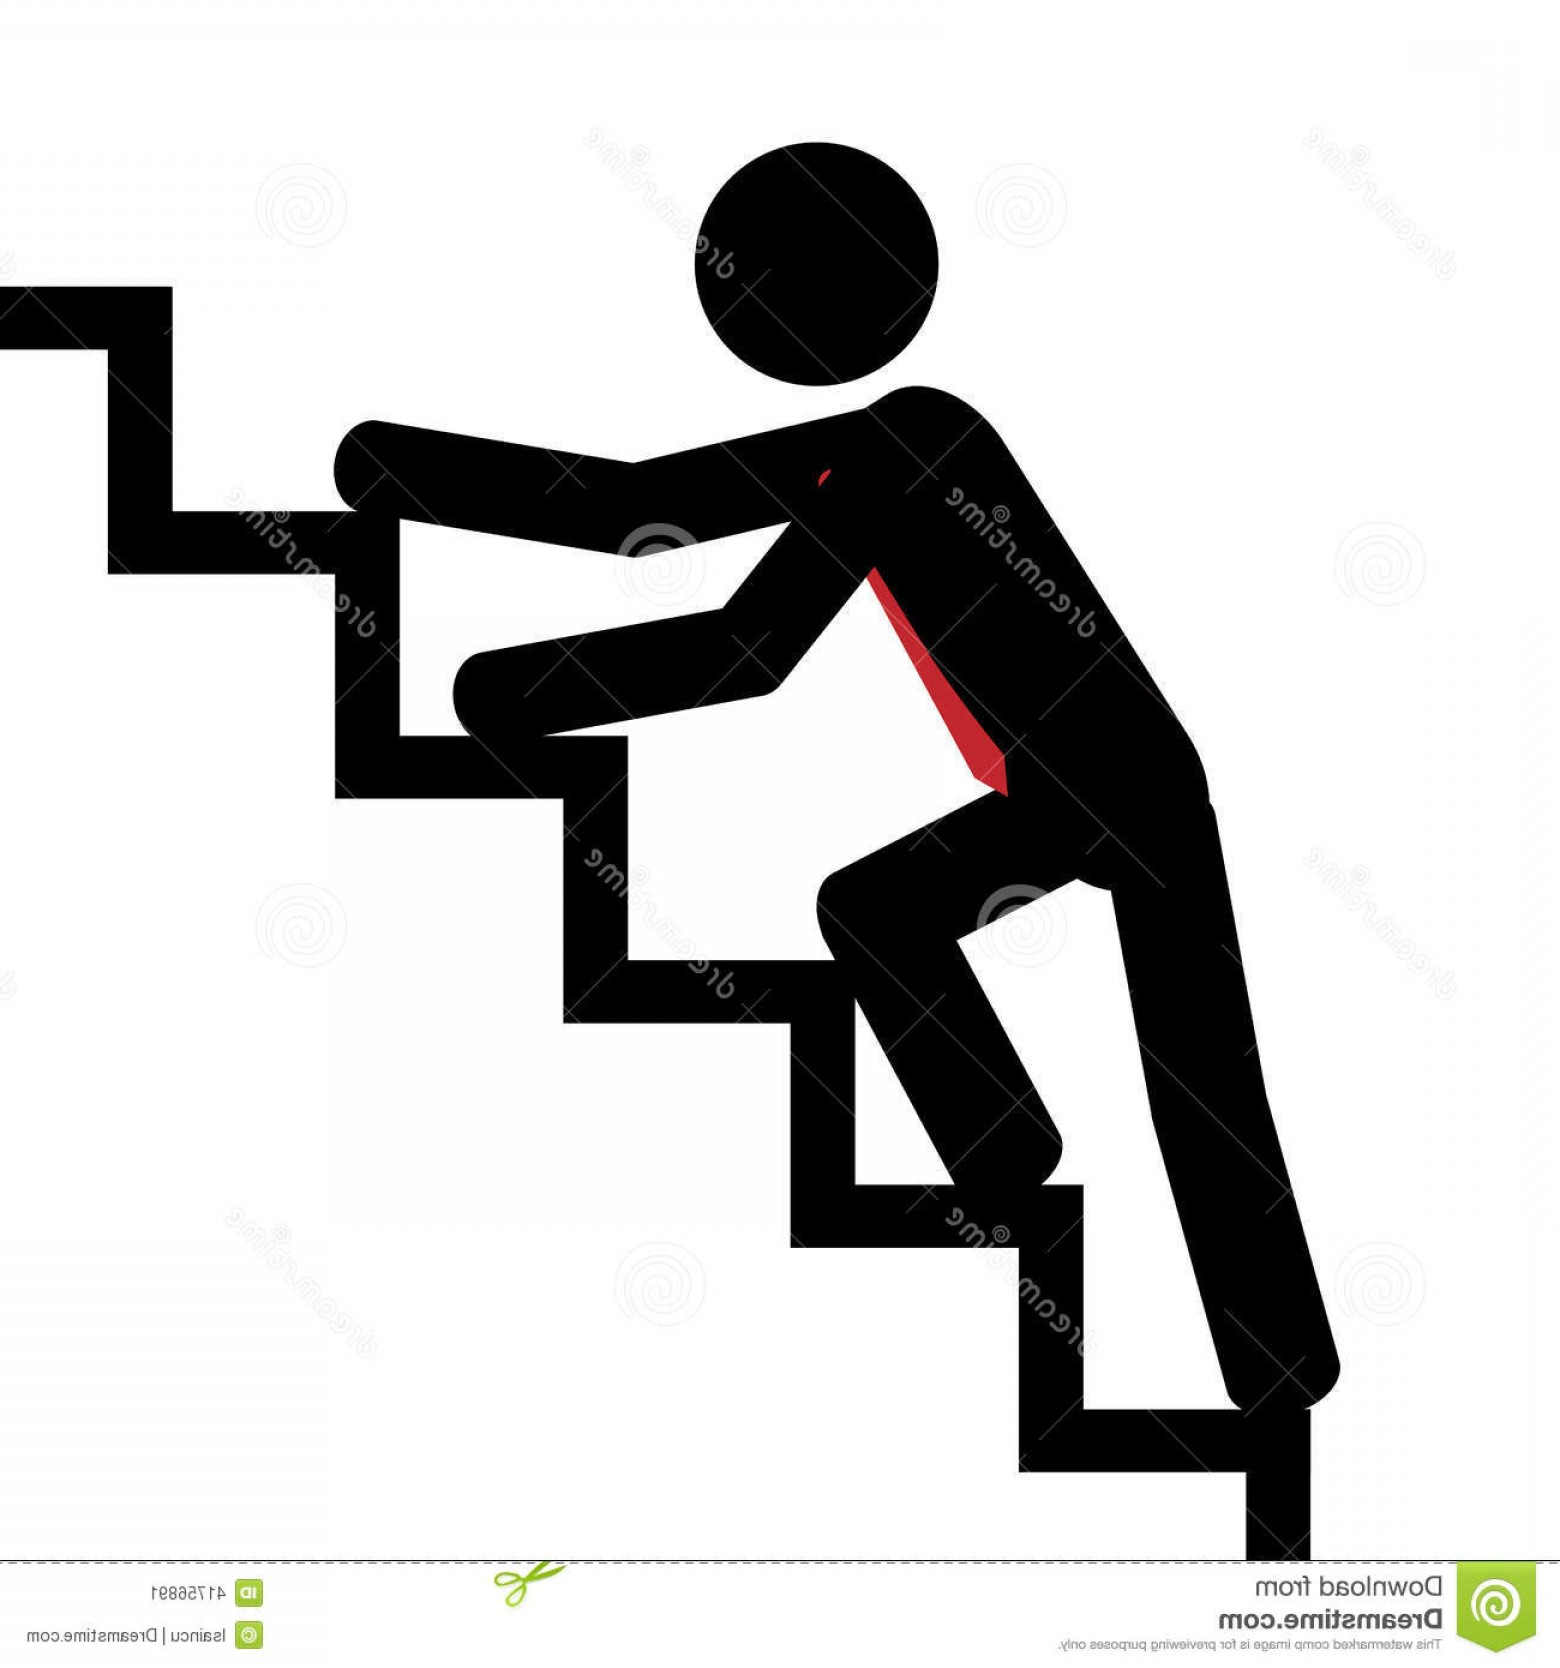 Stair Climb Vector: Stock Illustration Up Stairs Vector Illustration Man Trying To Climb Image